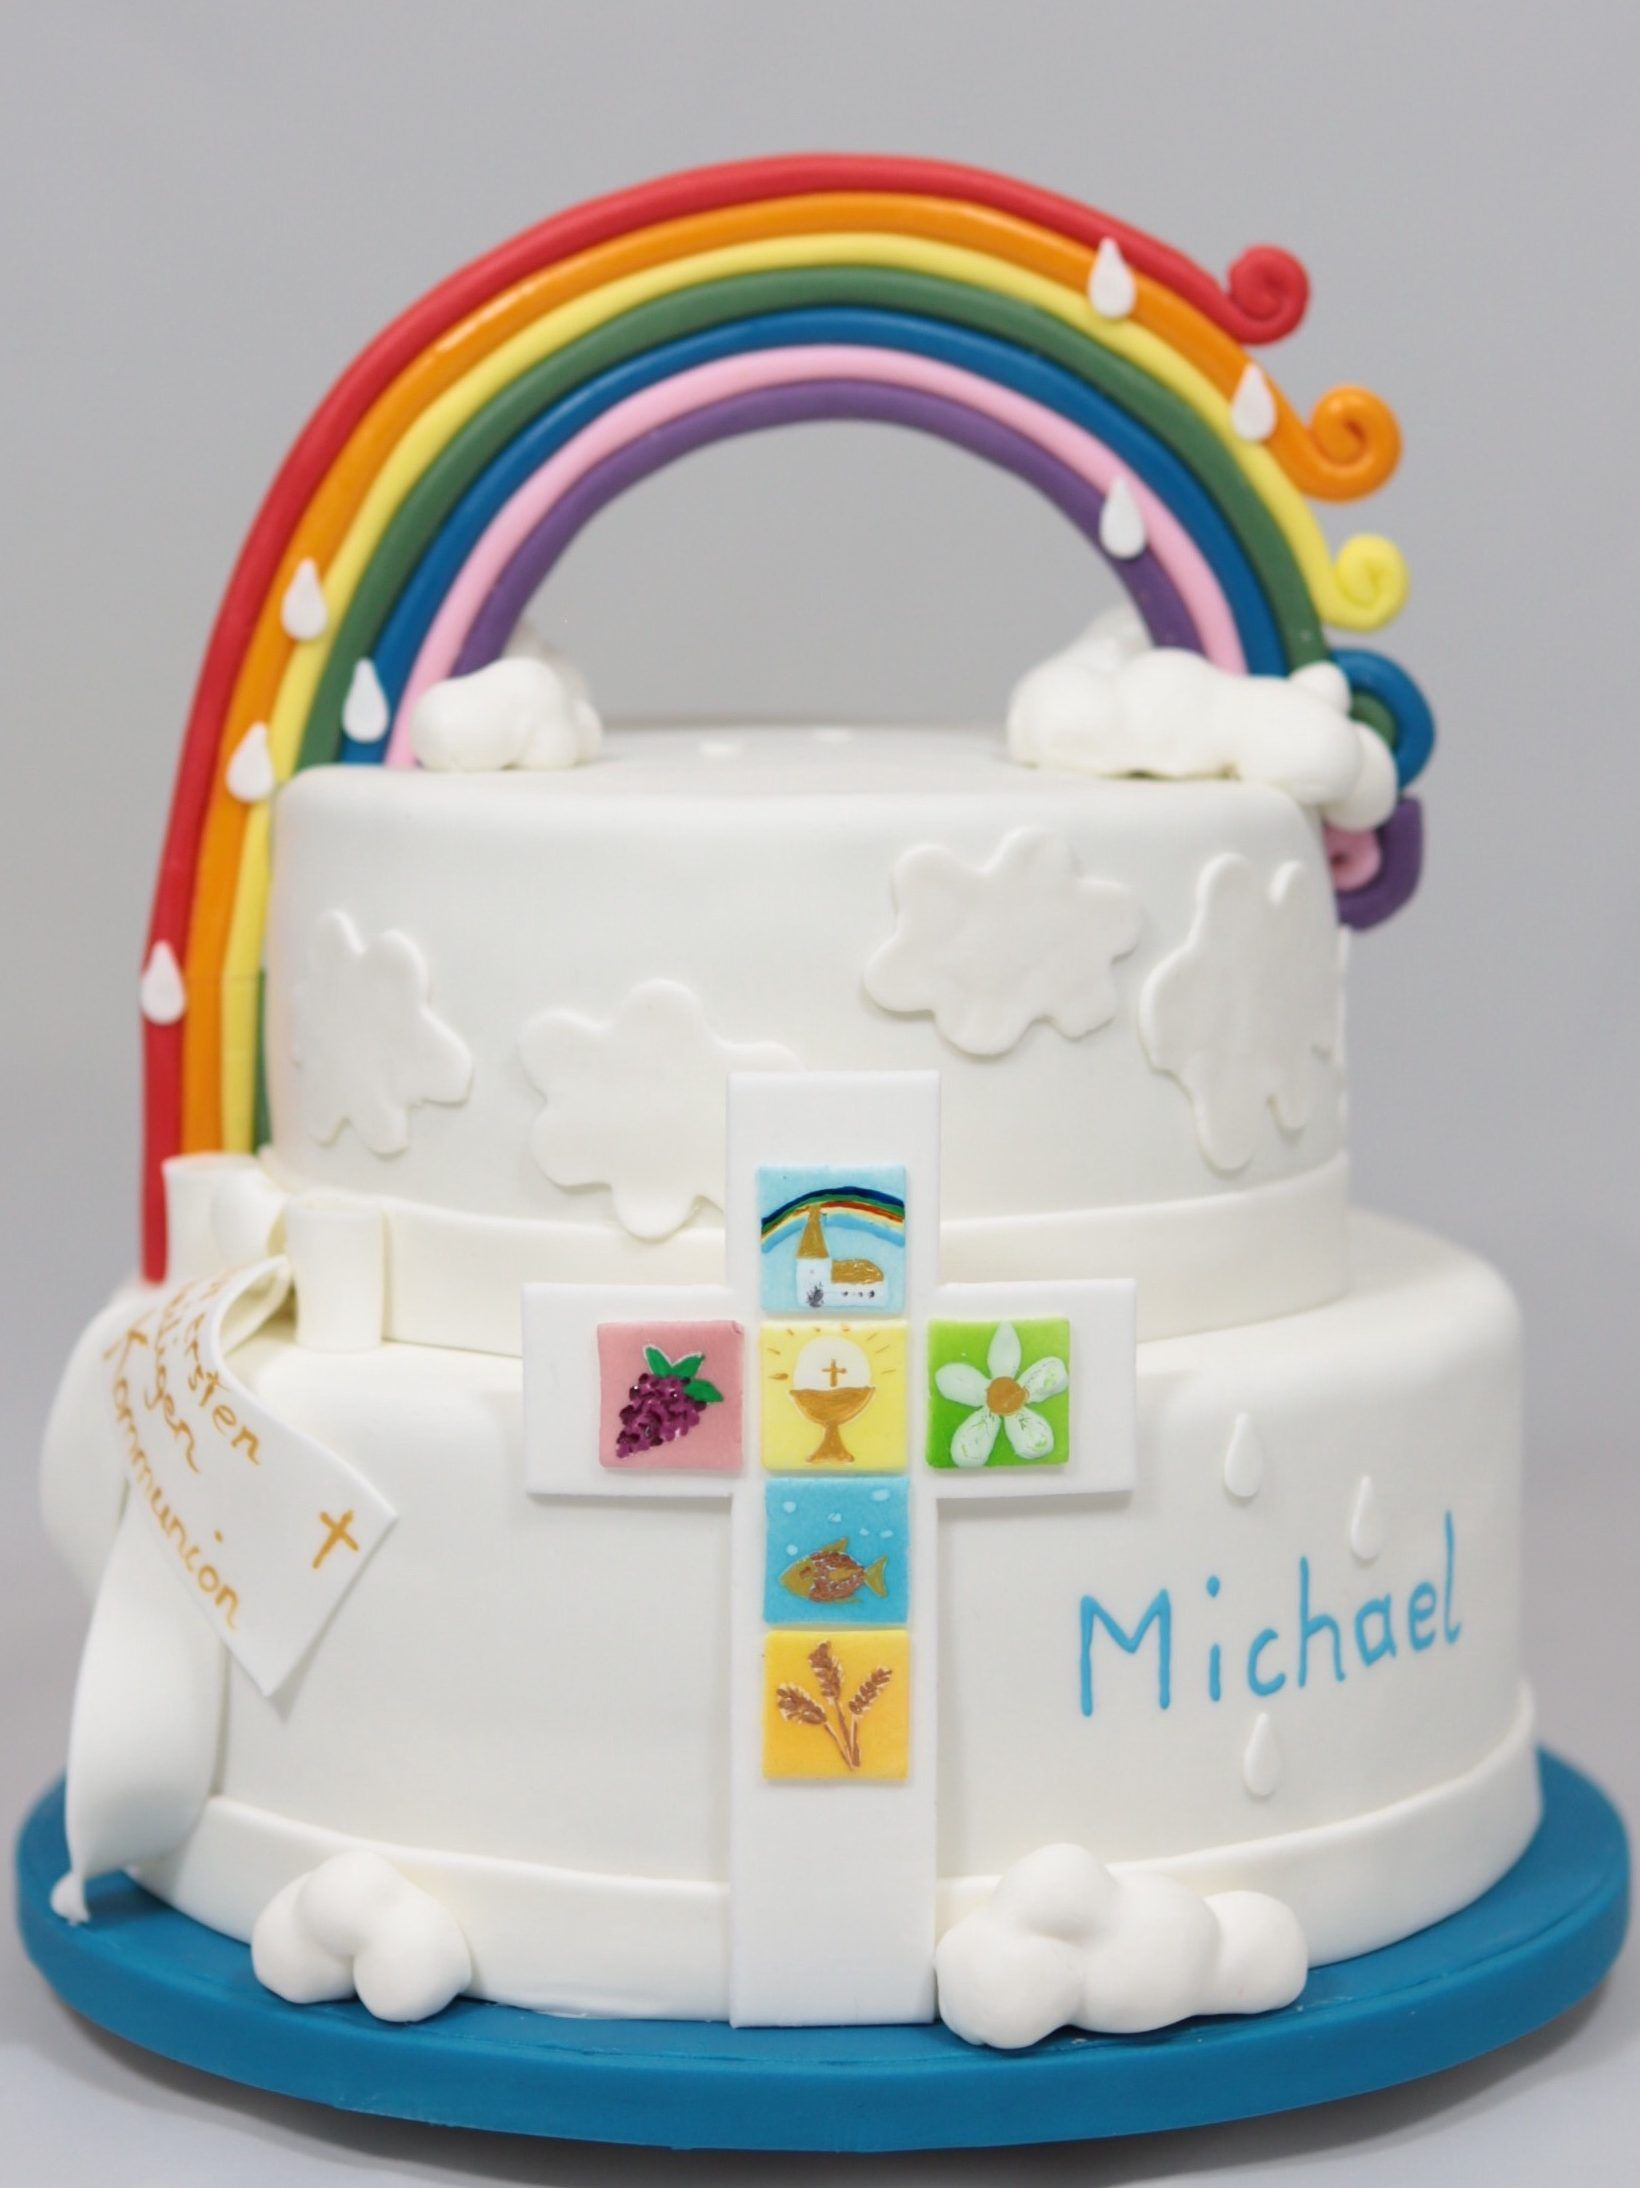 regenbogen rainbow torte cake first communion. Black Bedroom Furniture Sets. Home Design Ideas